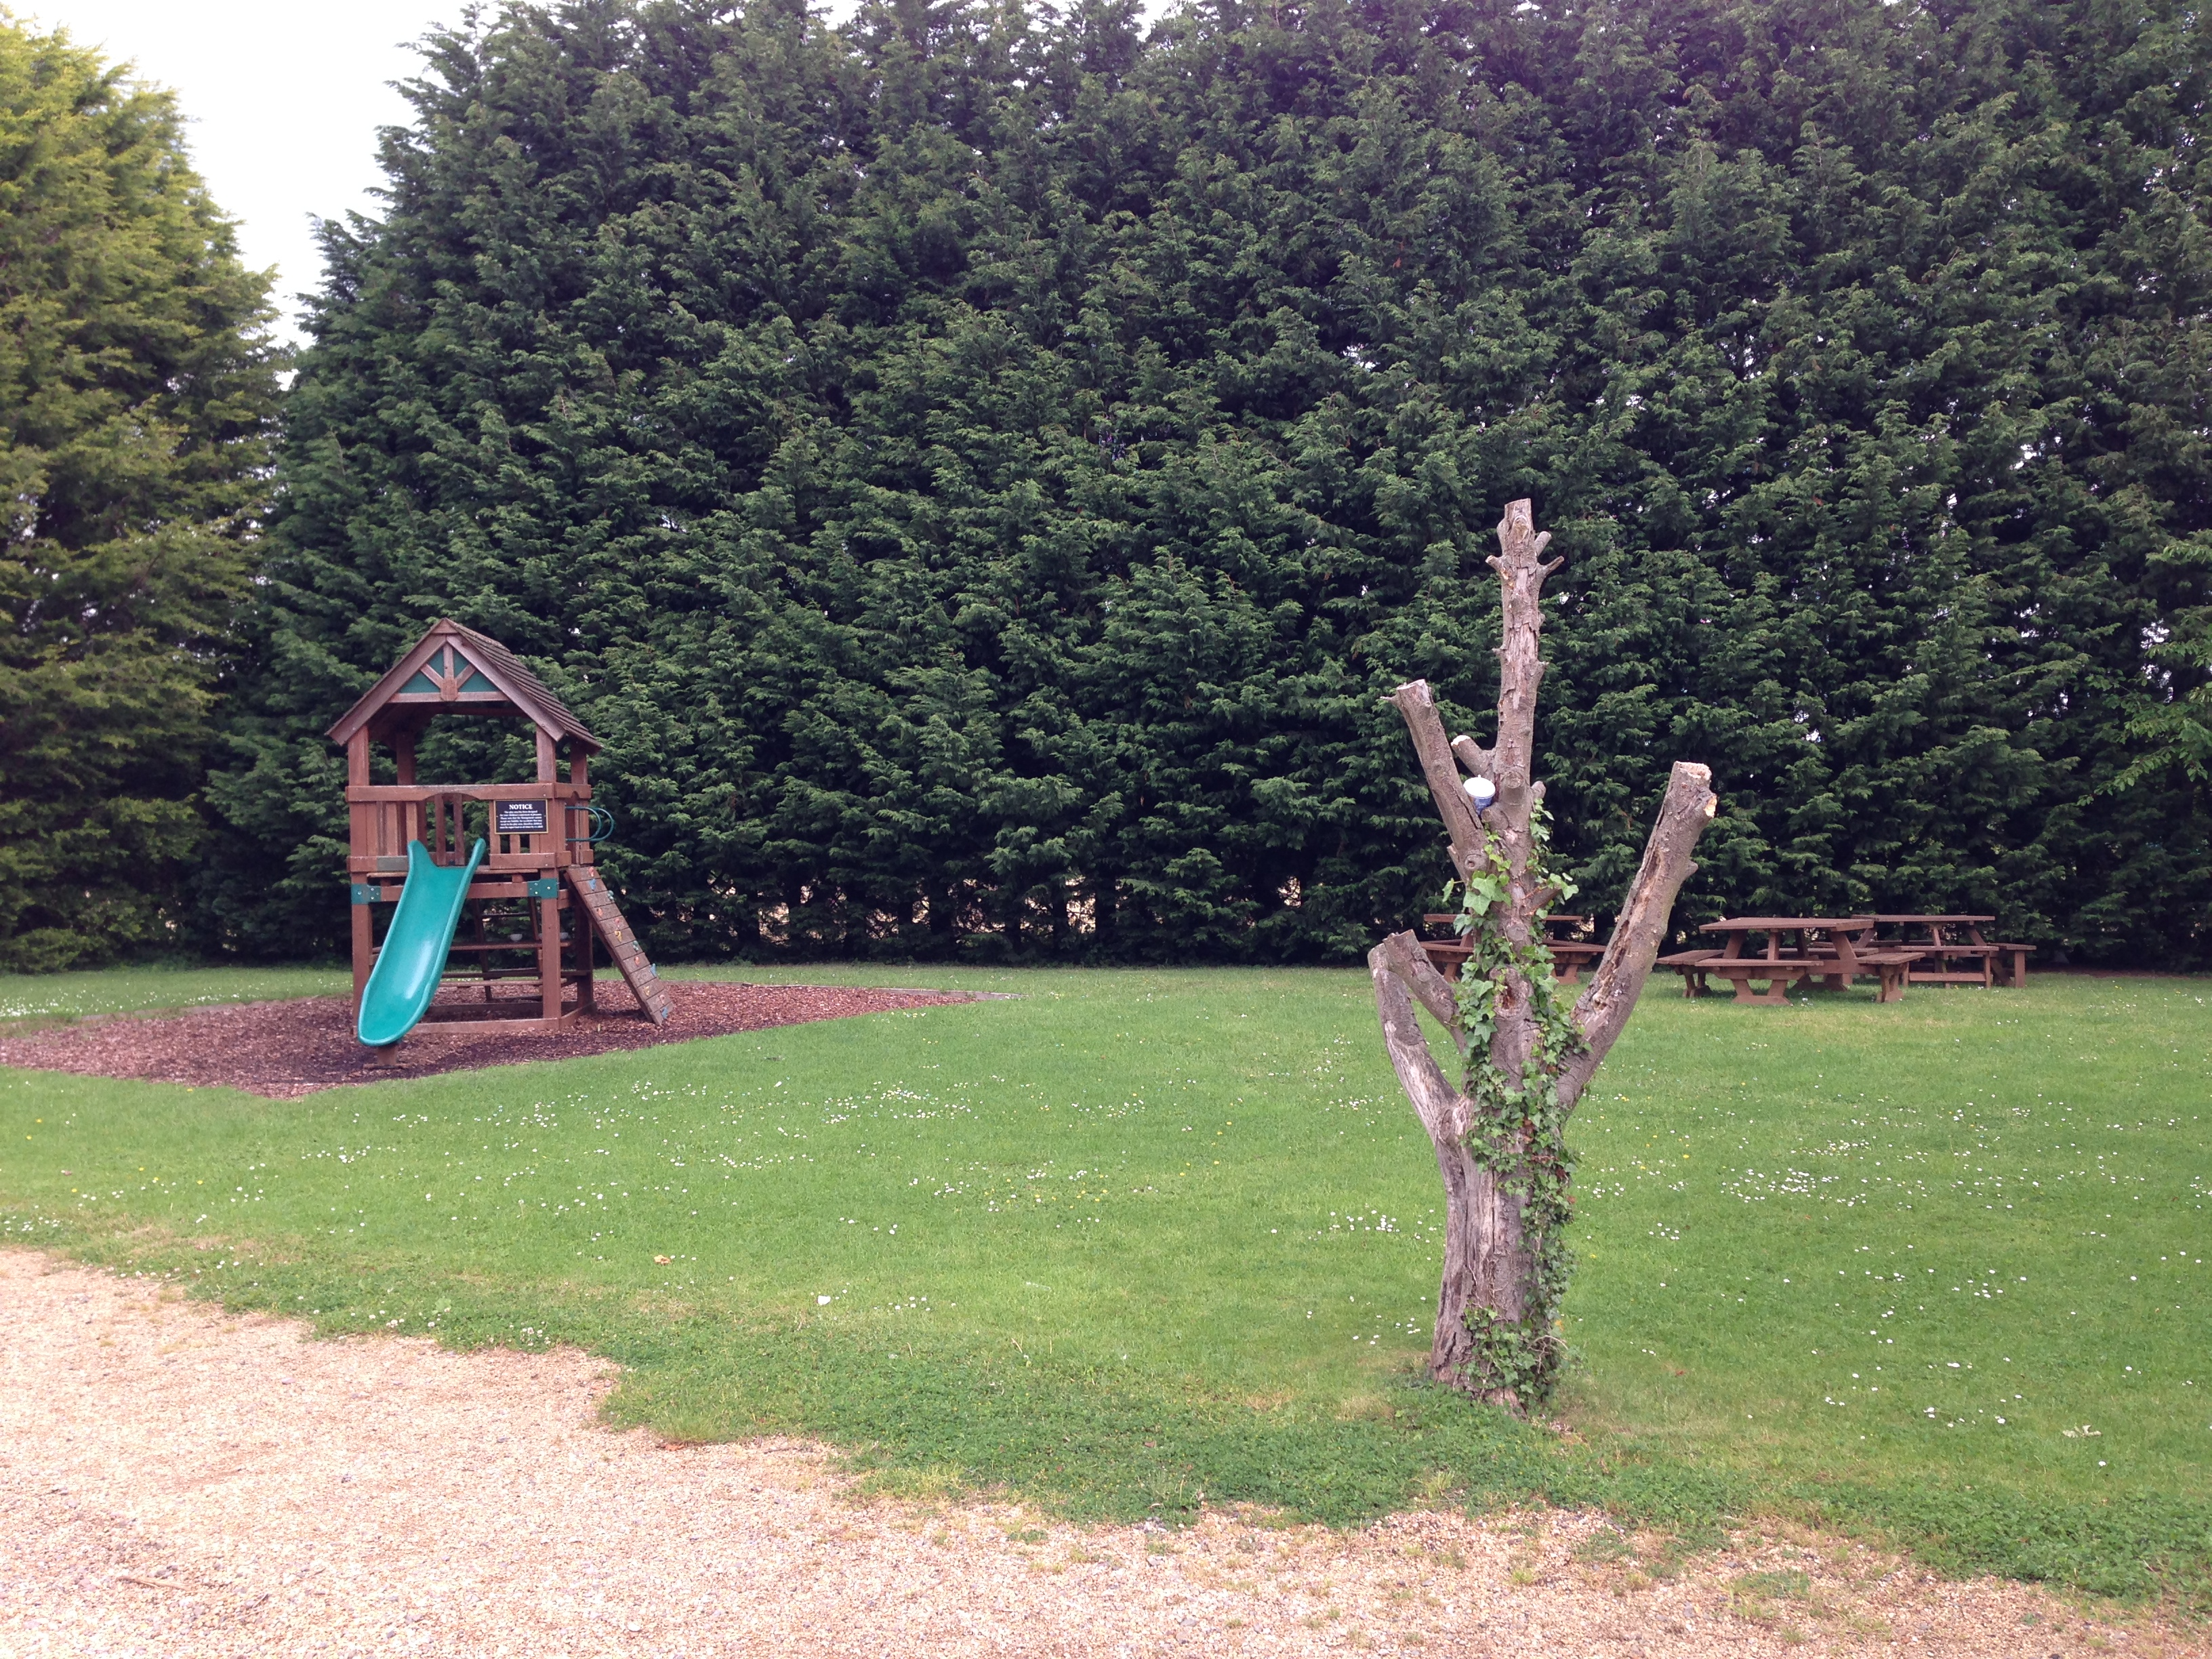 The Plough Coton - Playground and outdoor seating